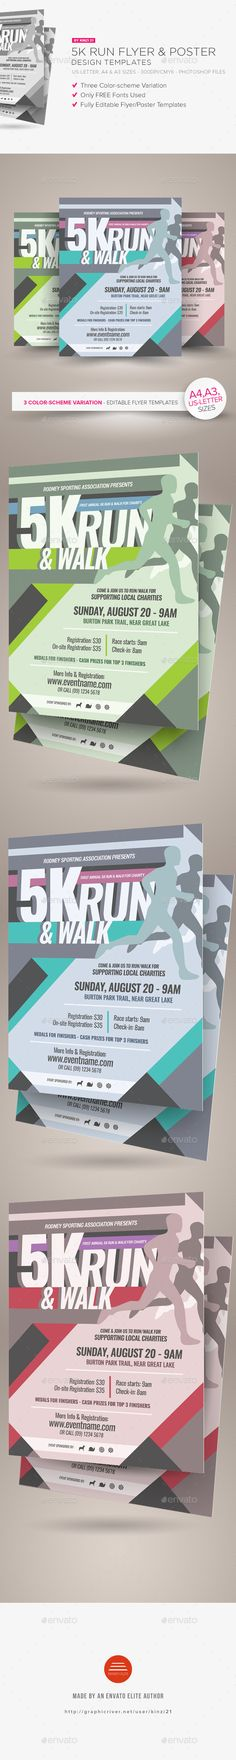 5K Run Flyer and Poster Templates  - PSD Template • Only available here ➝ http://graphicriver.net/item/5k-run-flyer-and-poster-templates/16869692?ref=pxcr